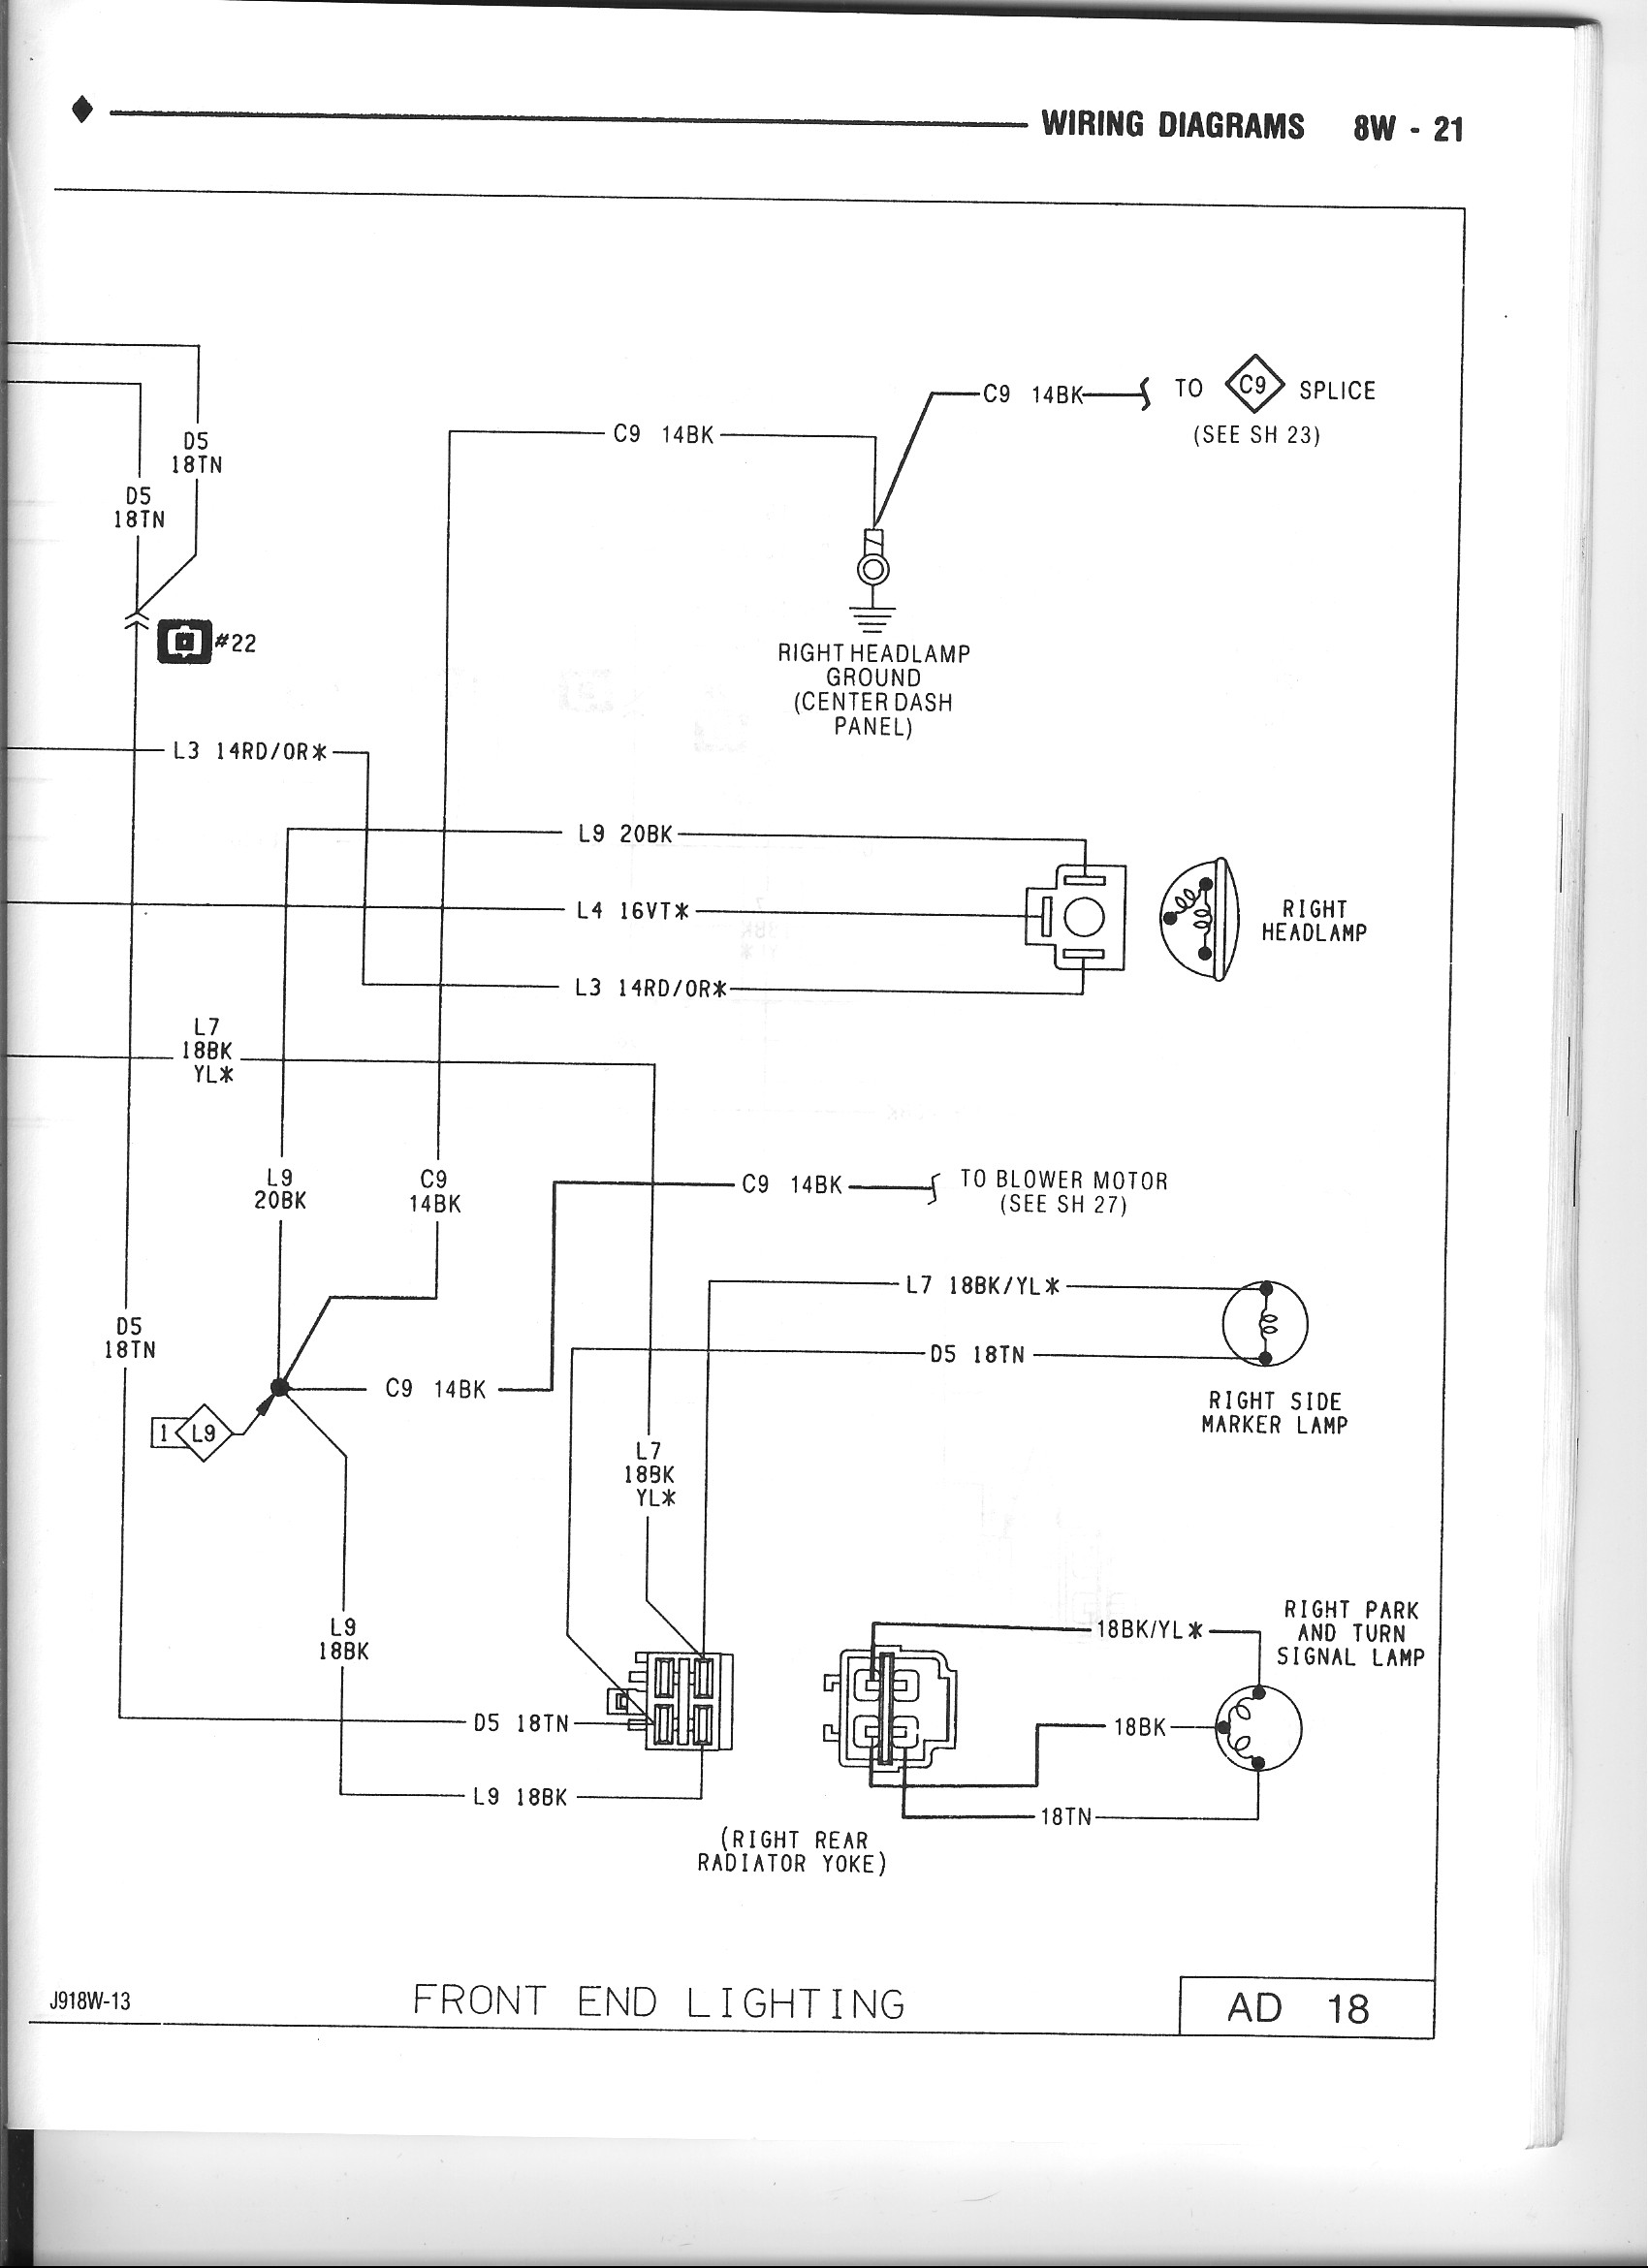 1991 dodge pickup wiring diagram sbec index of /dodge_ctd/1991.5-wiring_diagrams 1991 toyota pickup wiring diagram